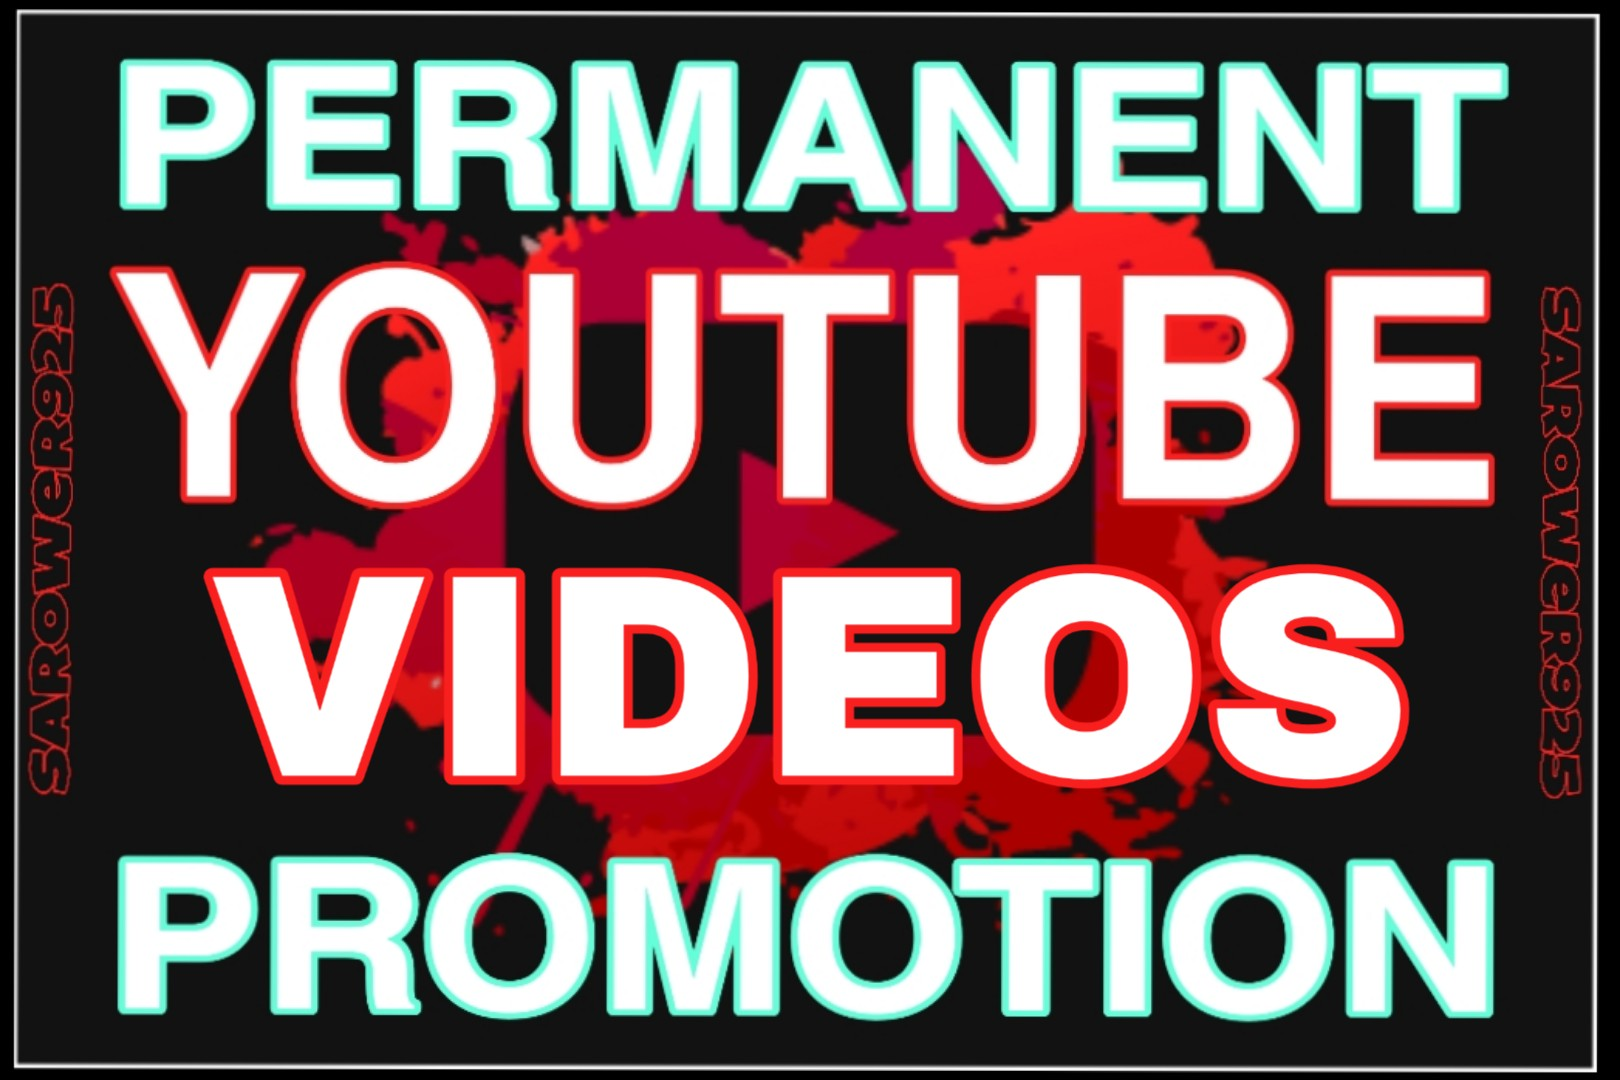 High quality YouTube video promotion with fast delivery